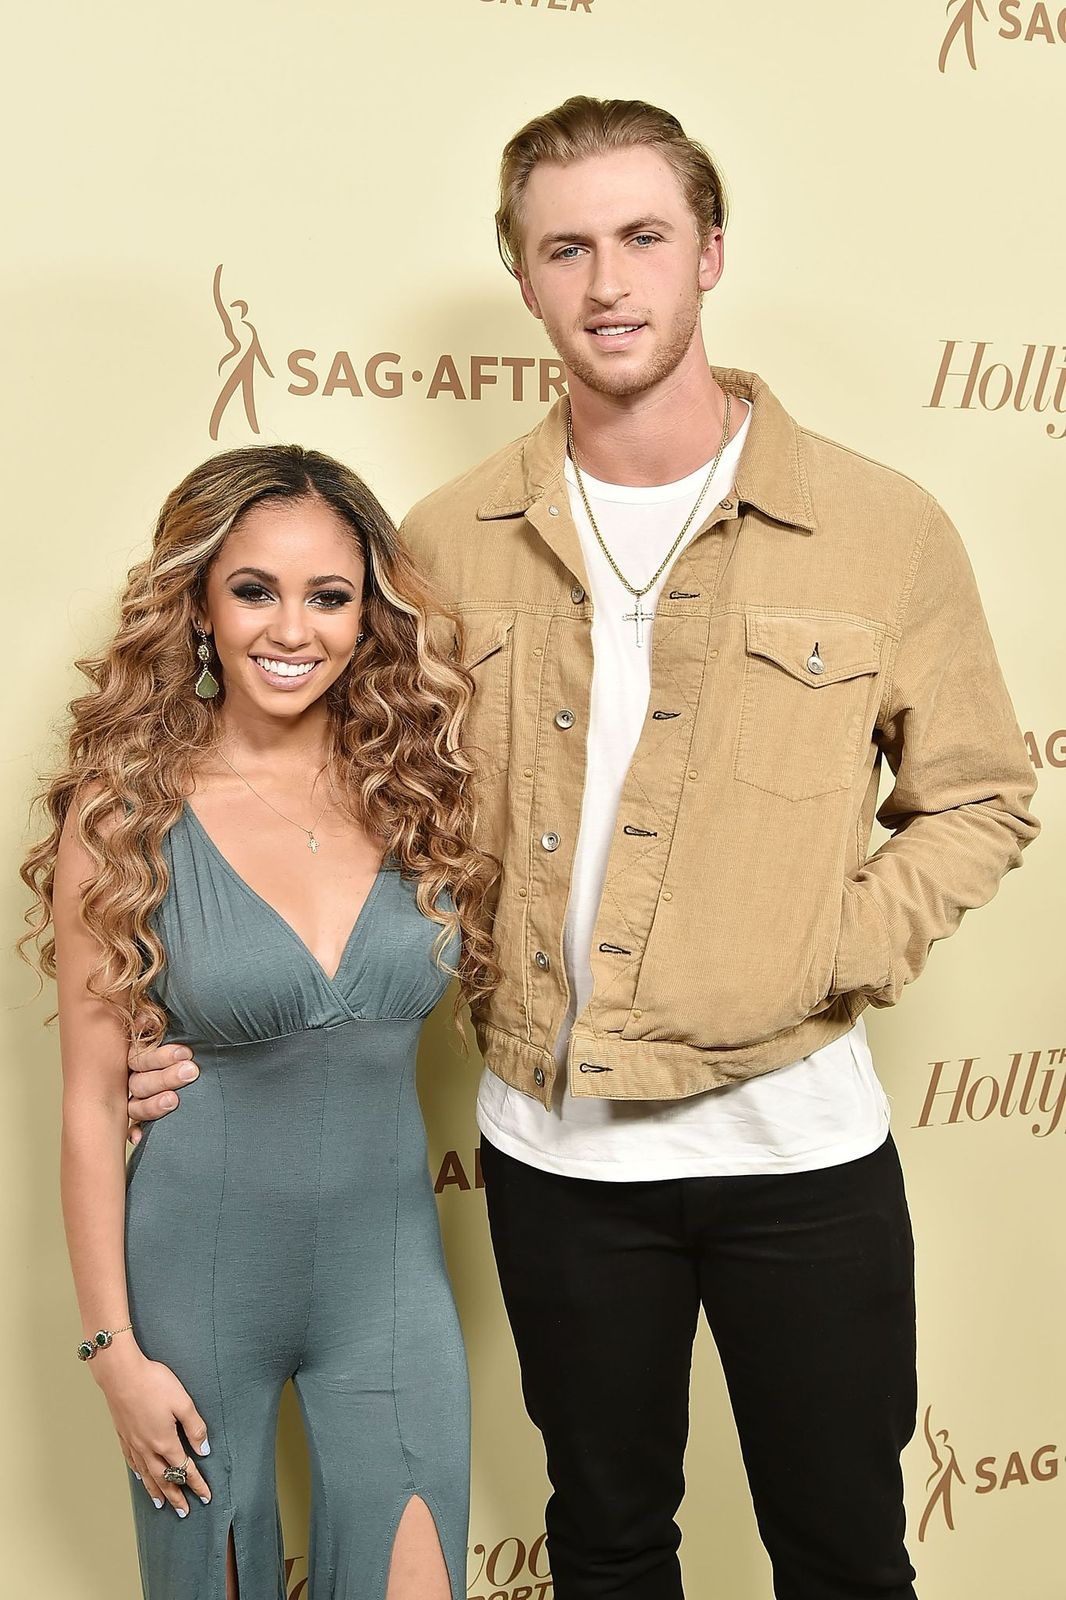 L'actrice Vanessa Morgan et son compagnon le joueur de Baseball Michael Kopech | Photo : Getty Images